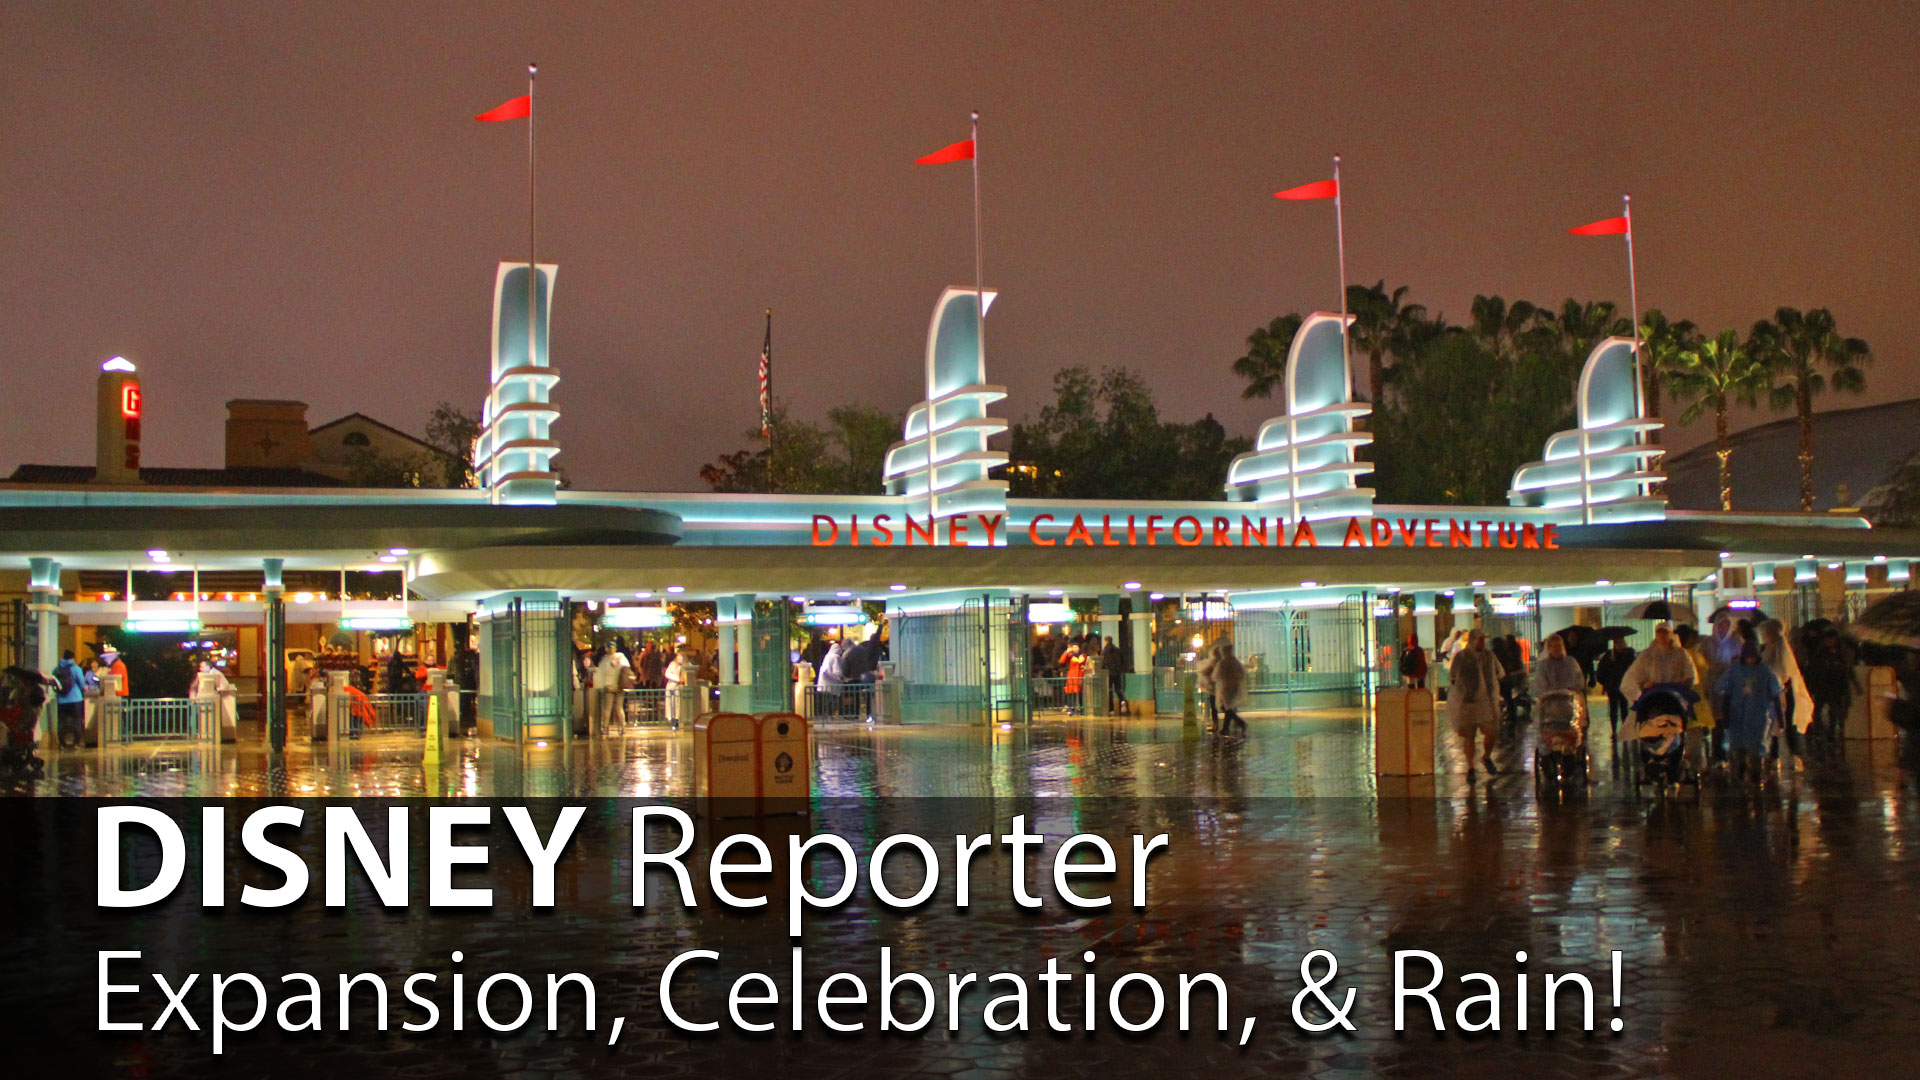 Expansion, Celebration, & Rain! - DISNEY Reporter